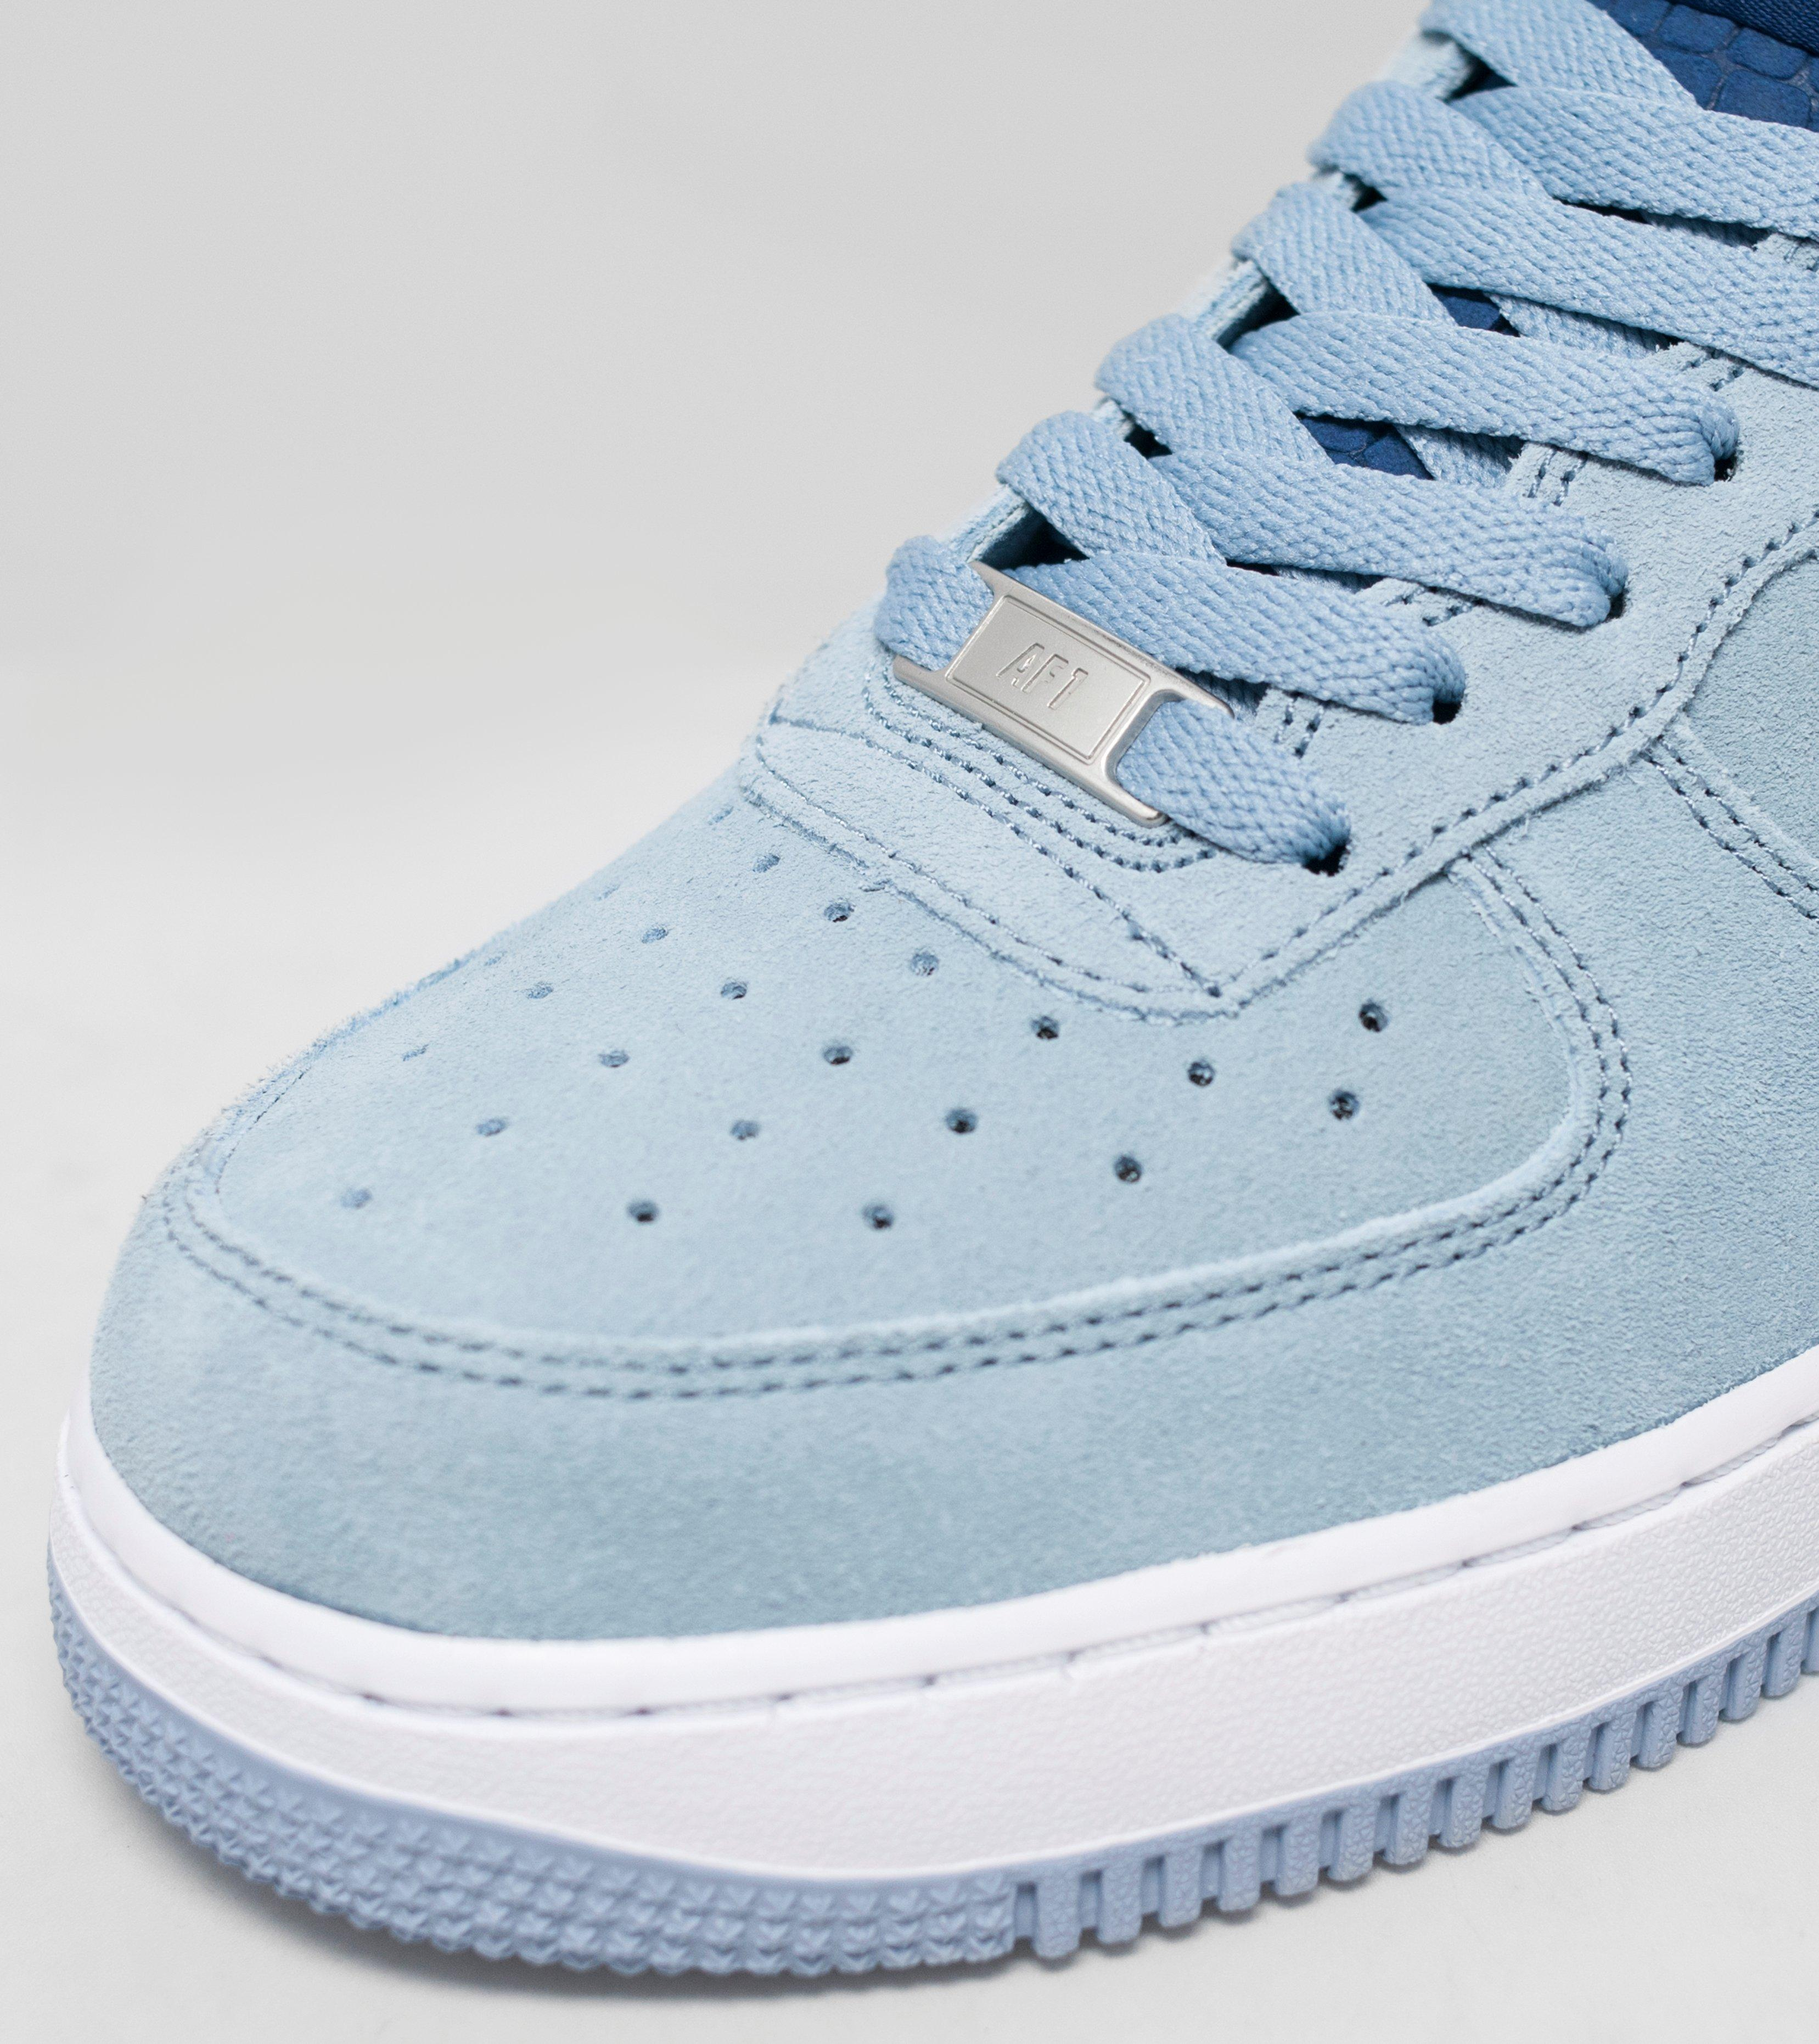 nike air force 1 suede blue womens